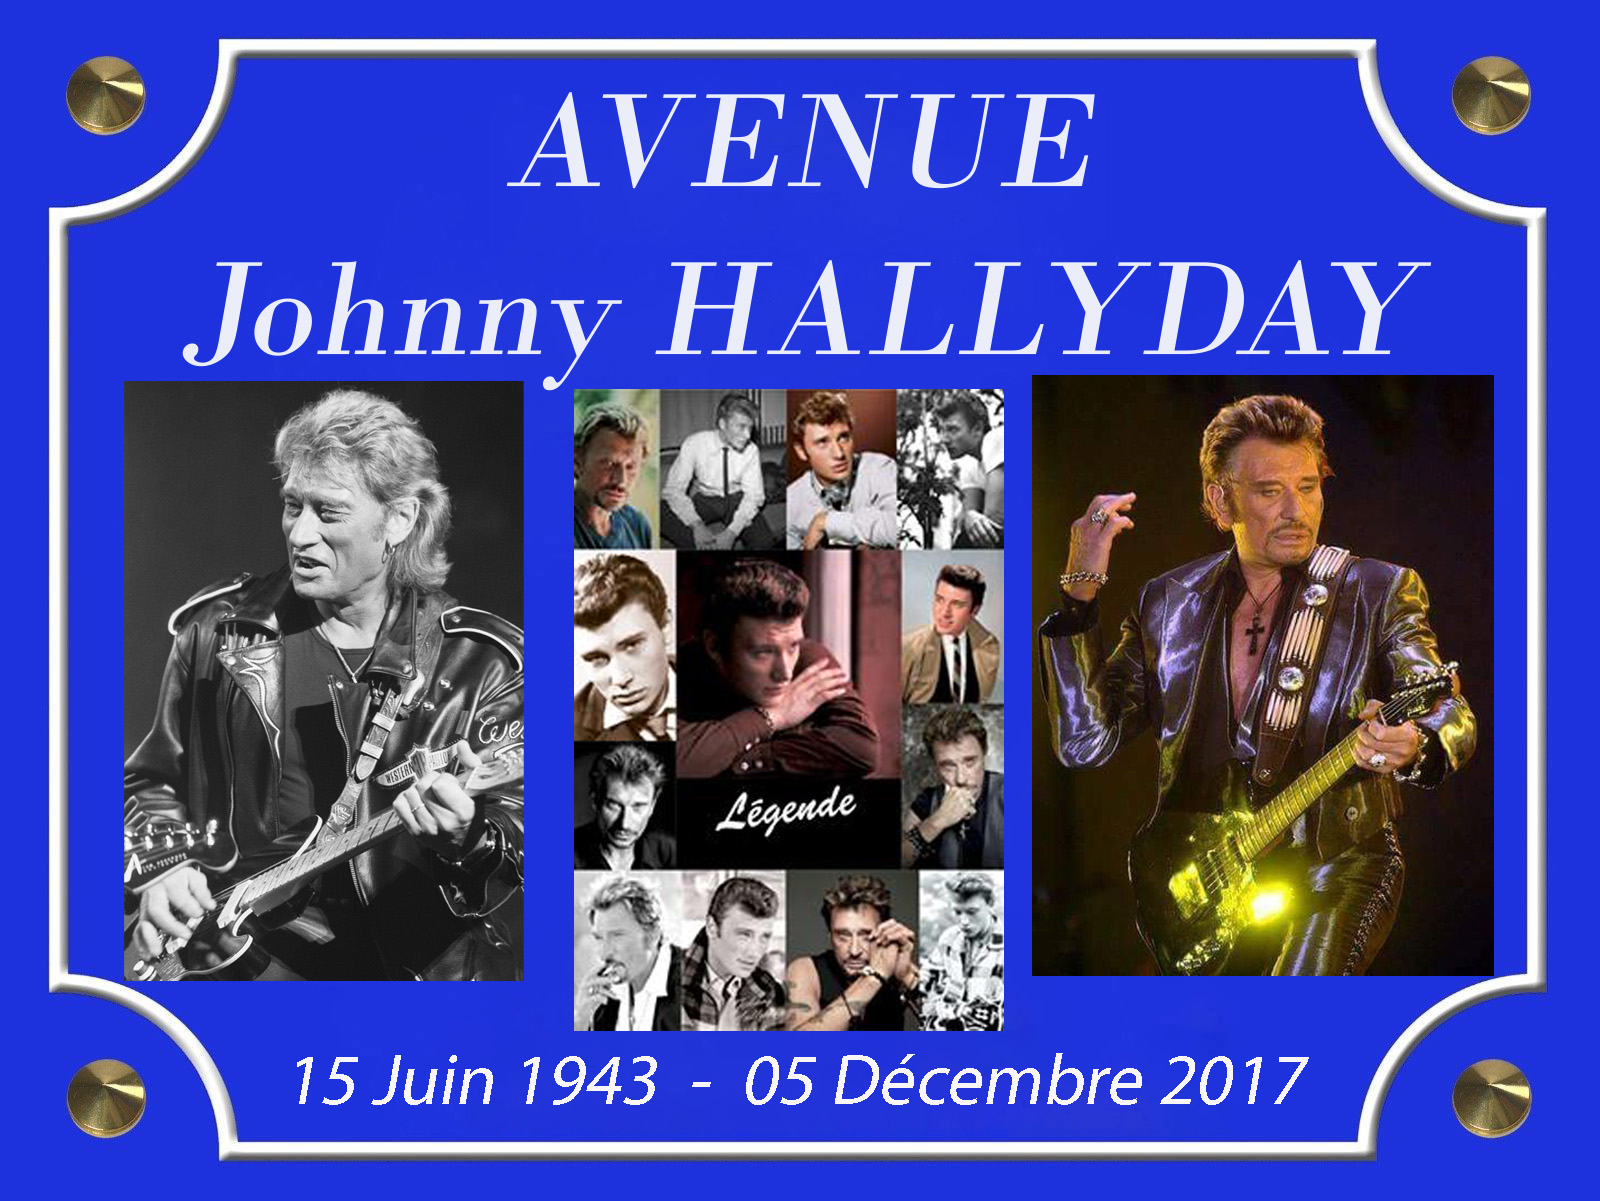 AVENUE Johnny HALLYDAY